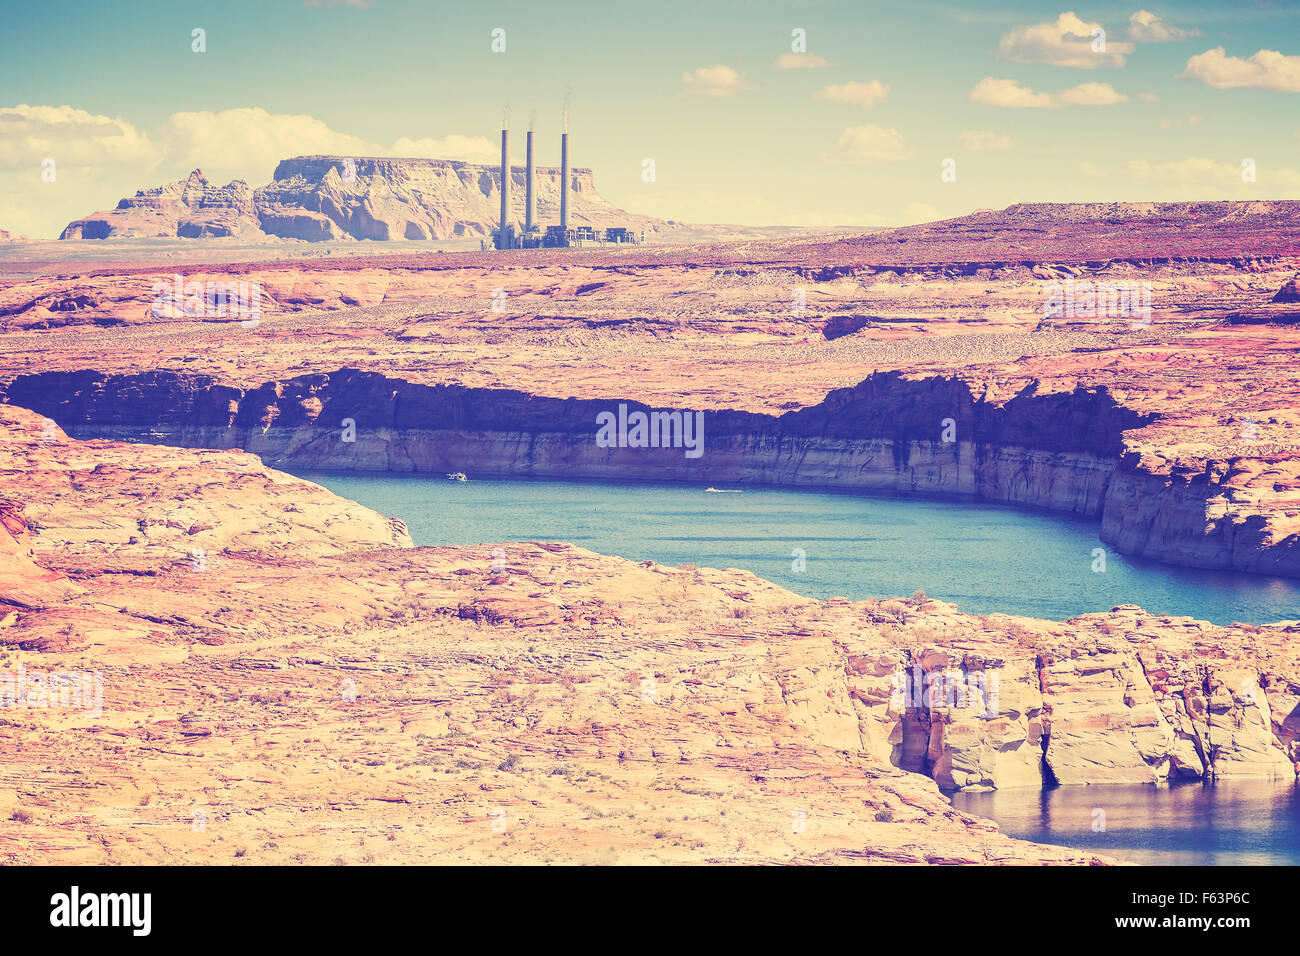 Vintage old film style photo of Lake Powell and Glen Canyon in Arizona, USA. - Stock Image